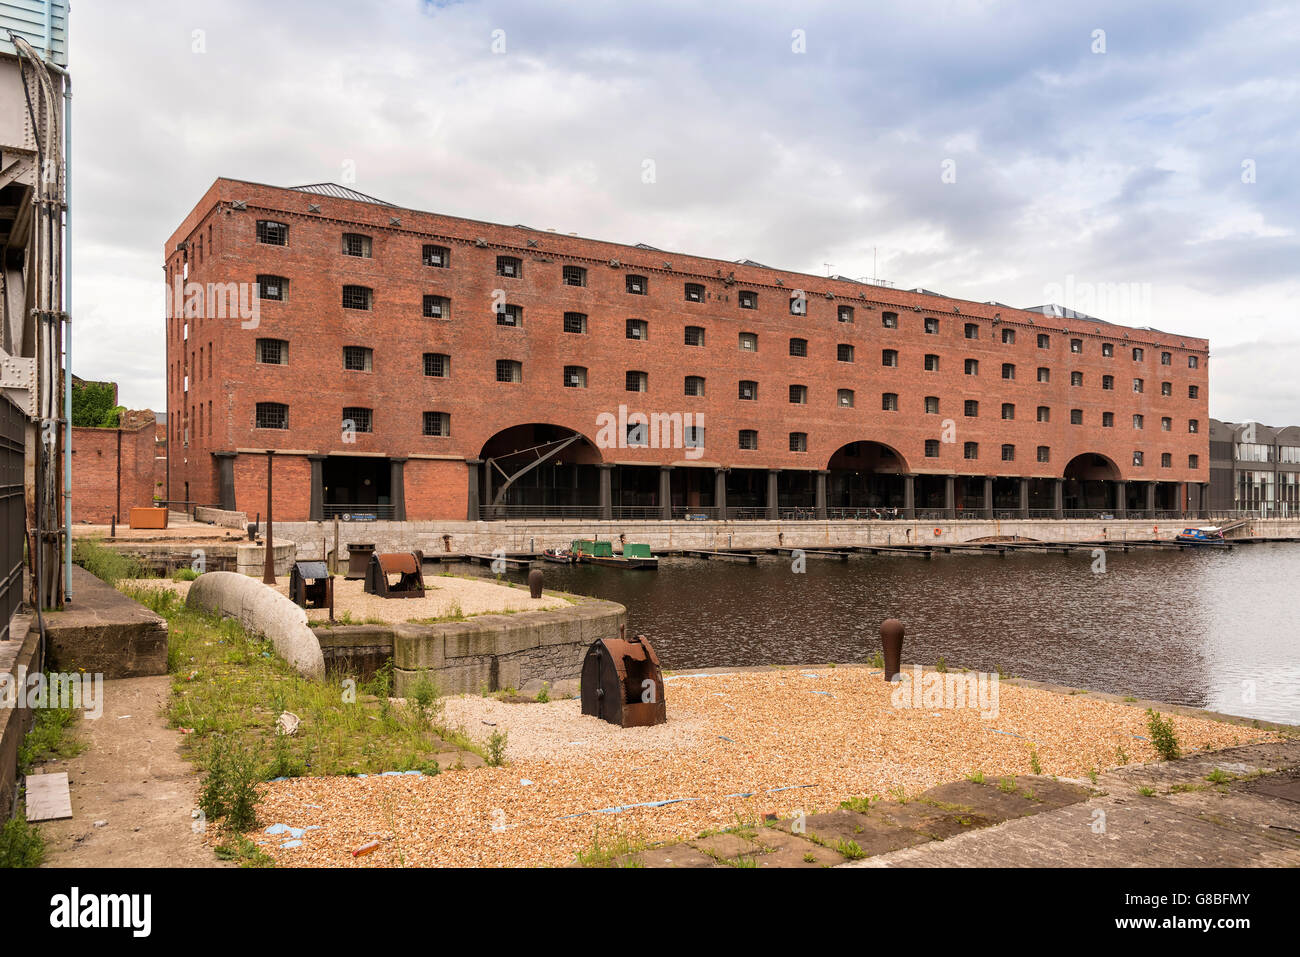 The Titanic Hotel in a converted former warehouse on Stanley Dock in Liverpool North Docks. Merseyside North West Stock Photo